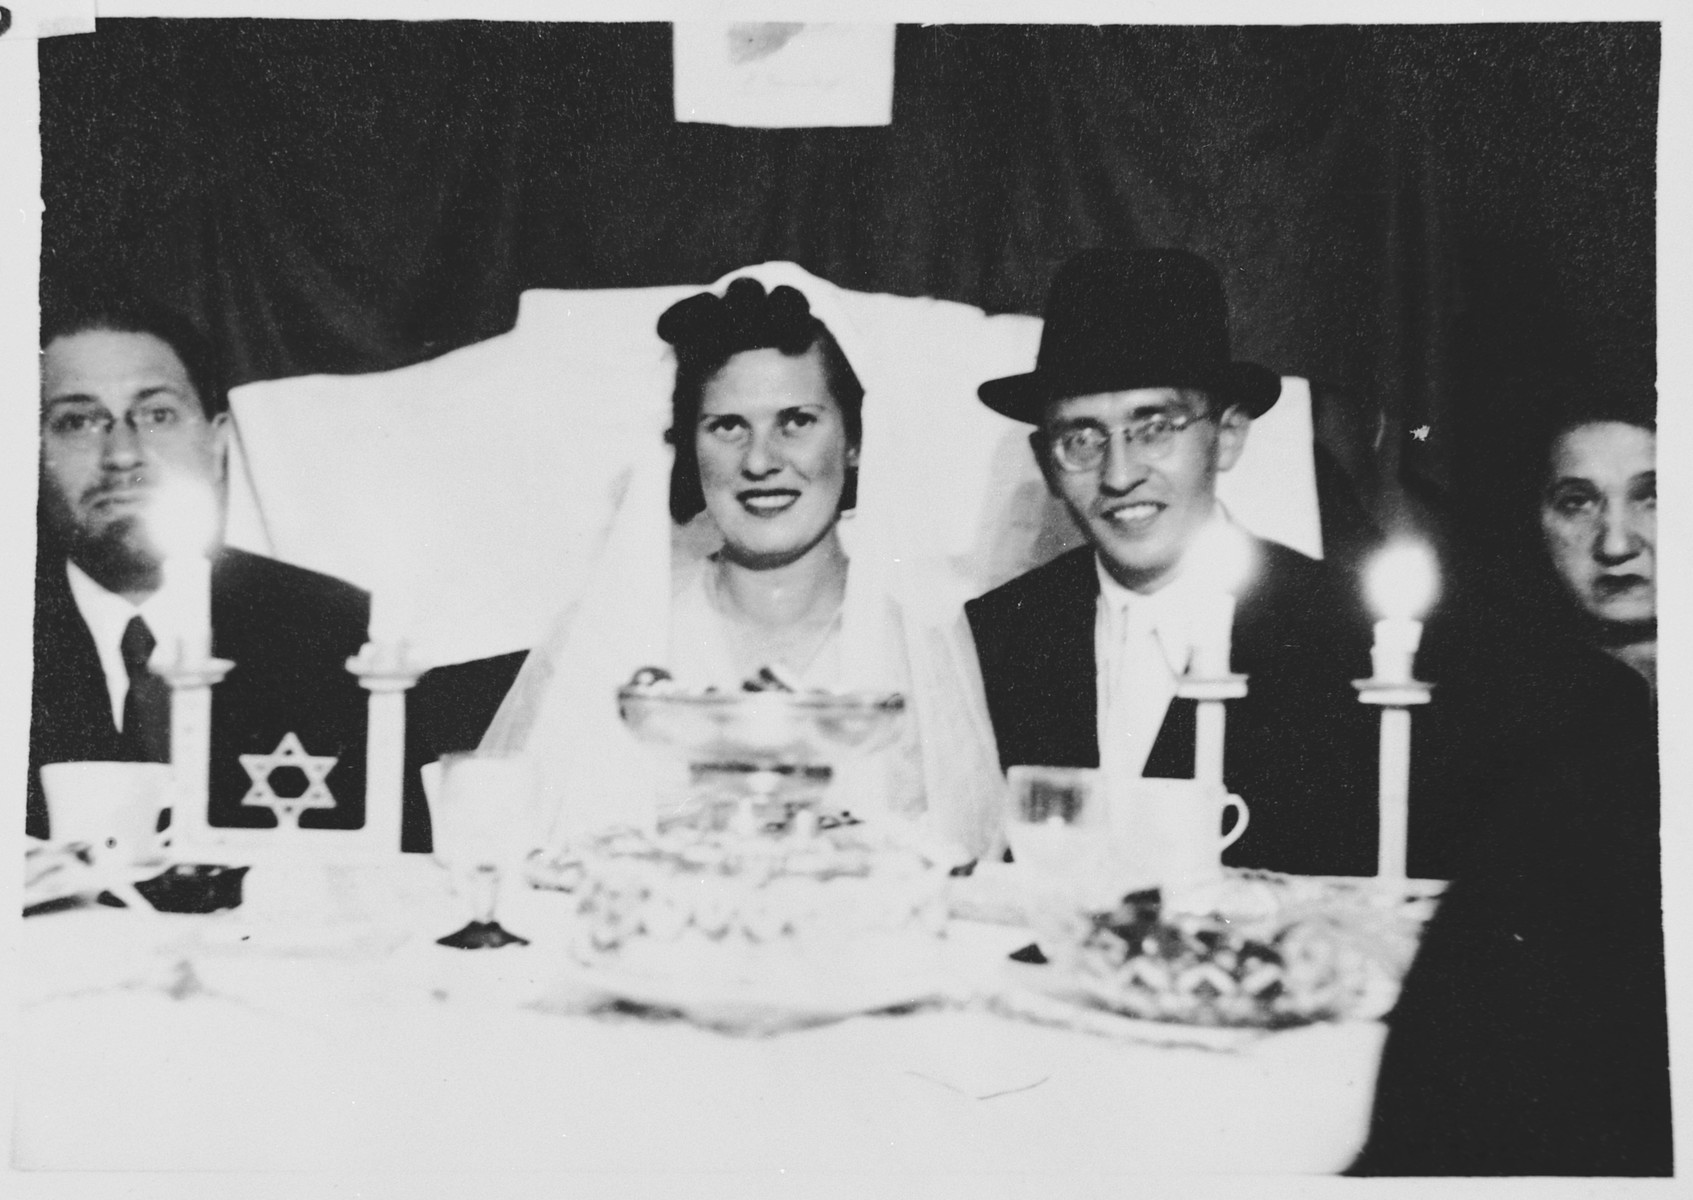 Two internees celebrate their wedding in the Ferramonti camp in a lunchtime ceremony performed by Rabbi Riccardo Pacifici.  Rabbi Pacifici is seated on the far left.